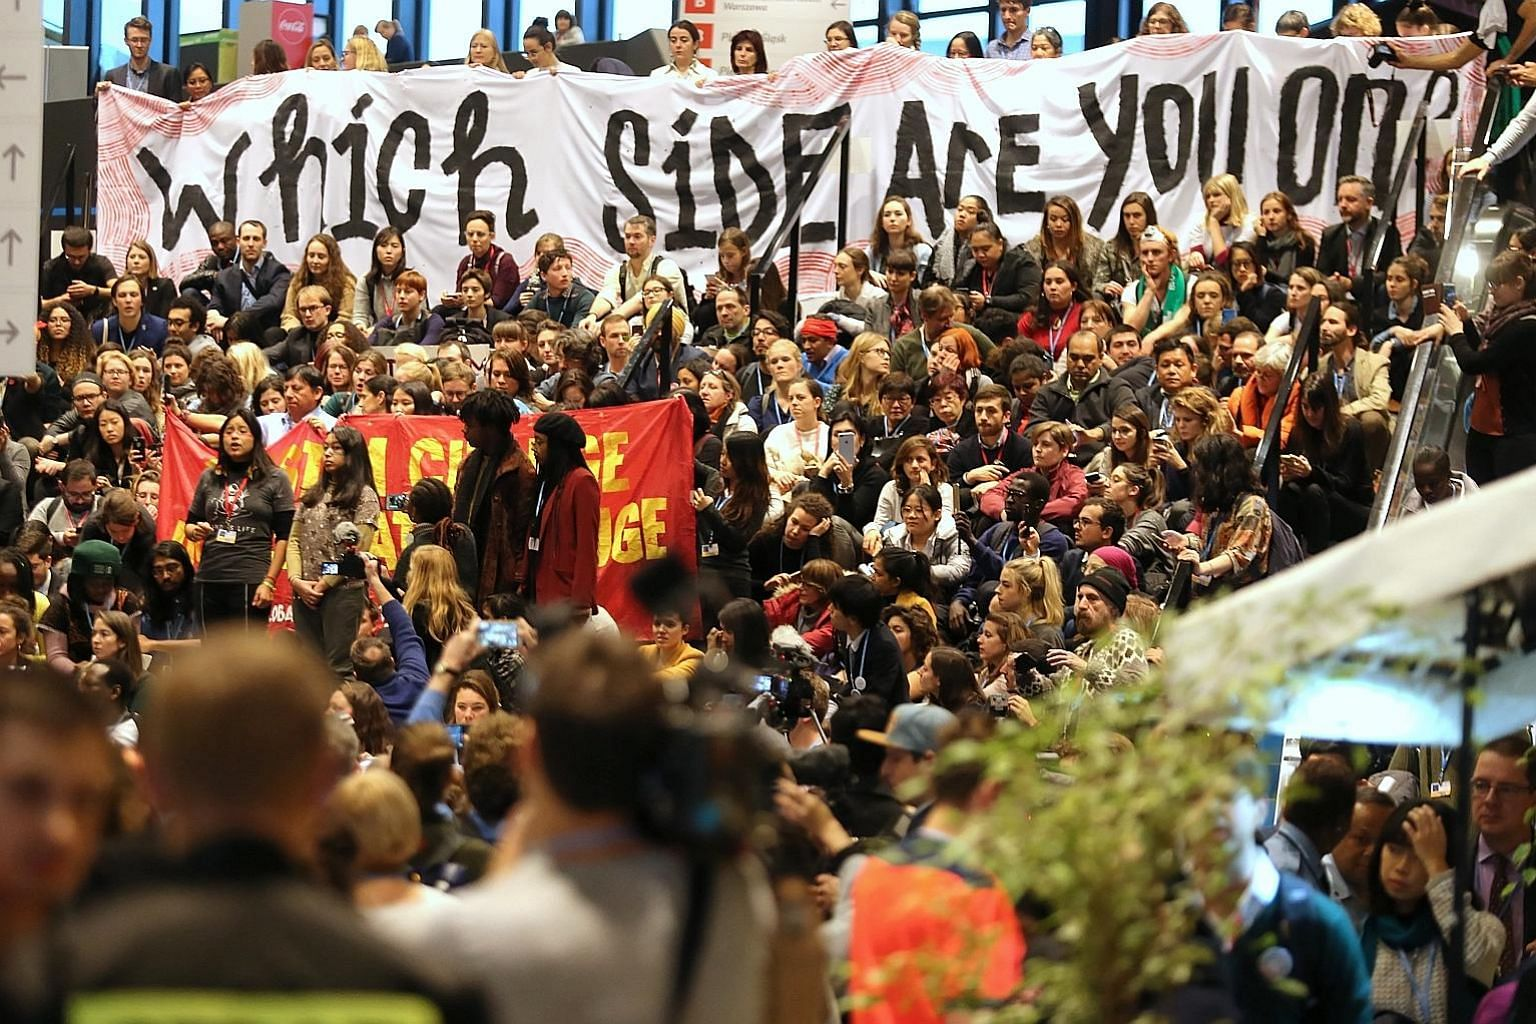 A rally by environmental groups being held alongside the UN climate talks in Katowice, Poland, on Friday. Delegates at the two-week talks were tasked with completing a complex rule book that would allow the 2015 Paris climate agreement to go into act